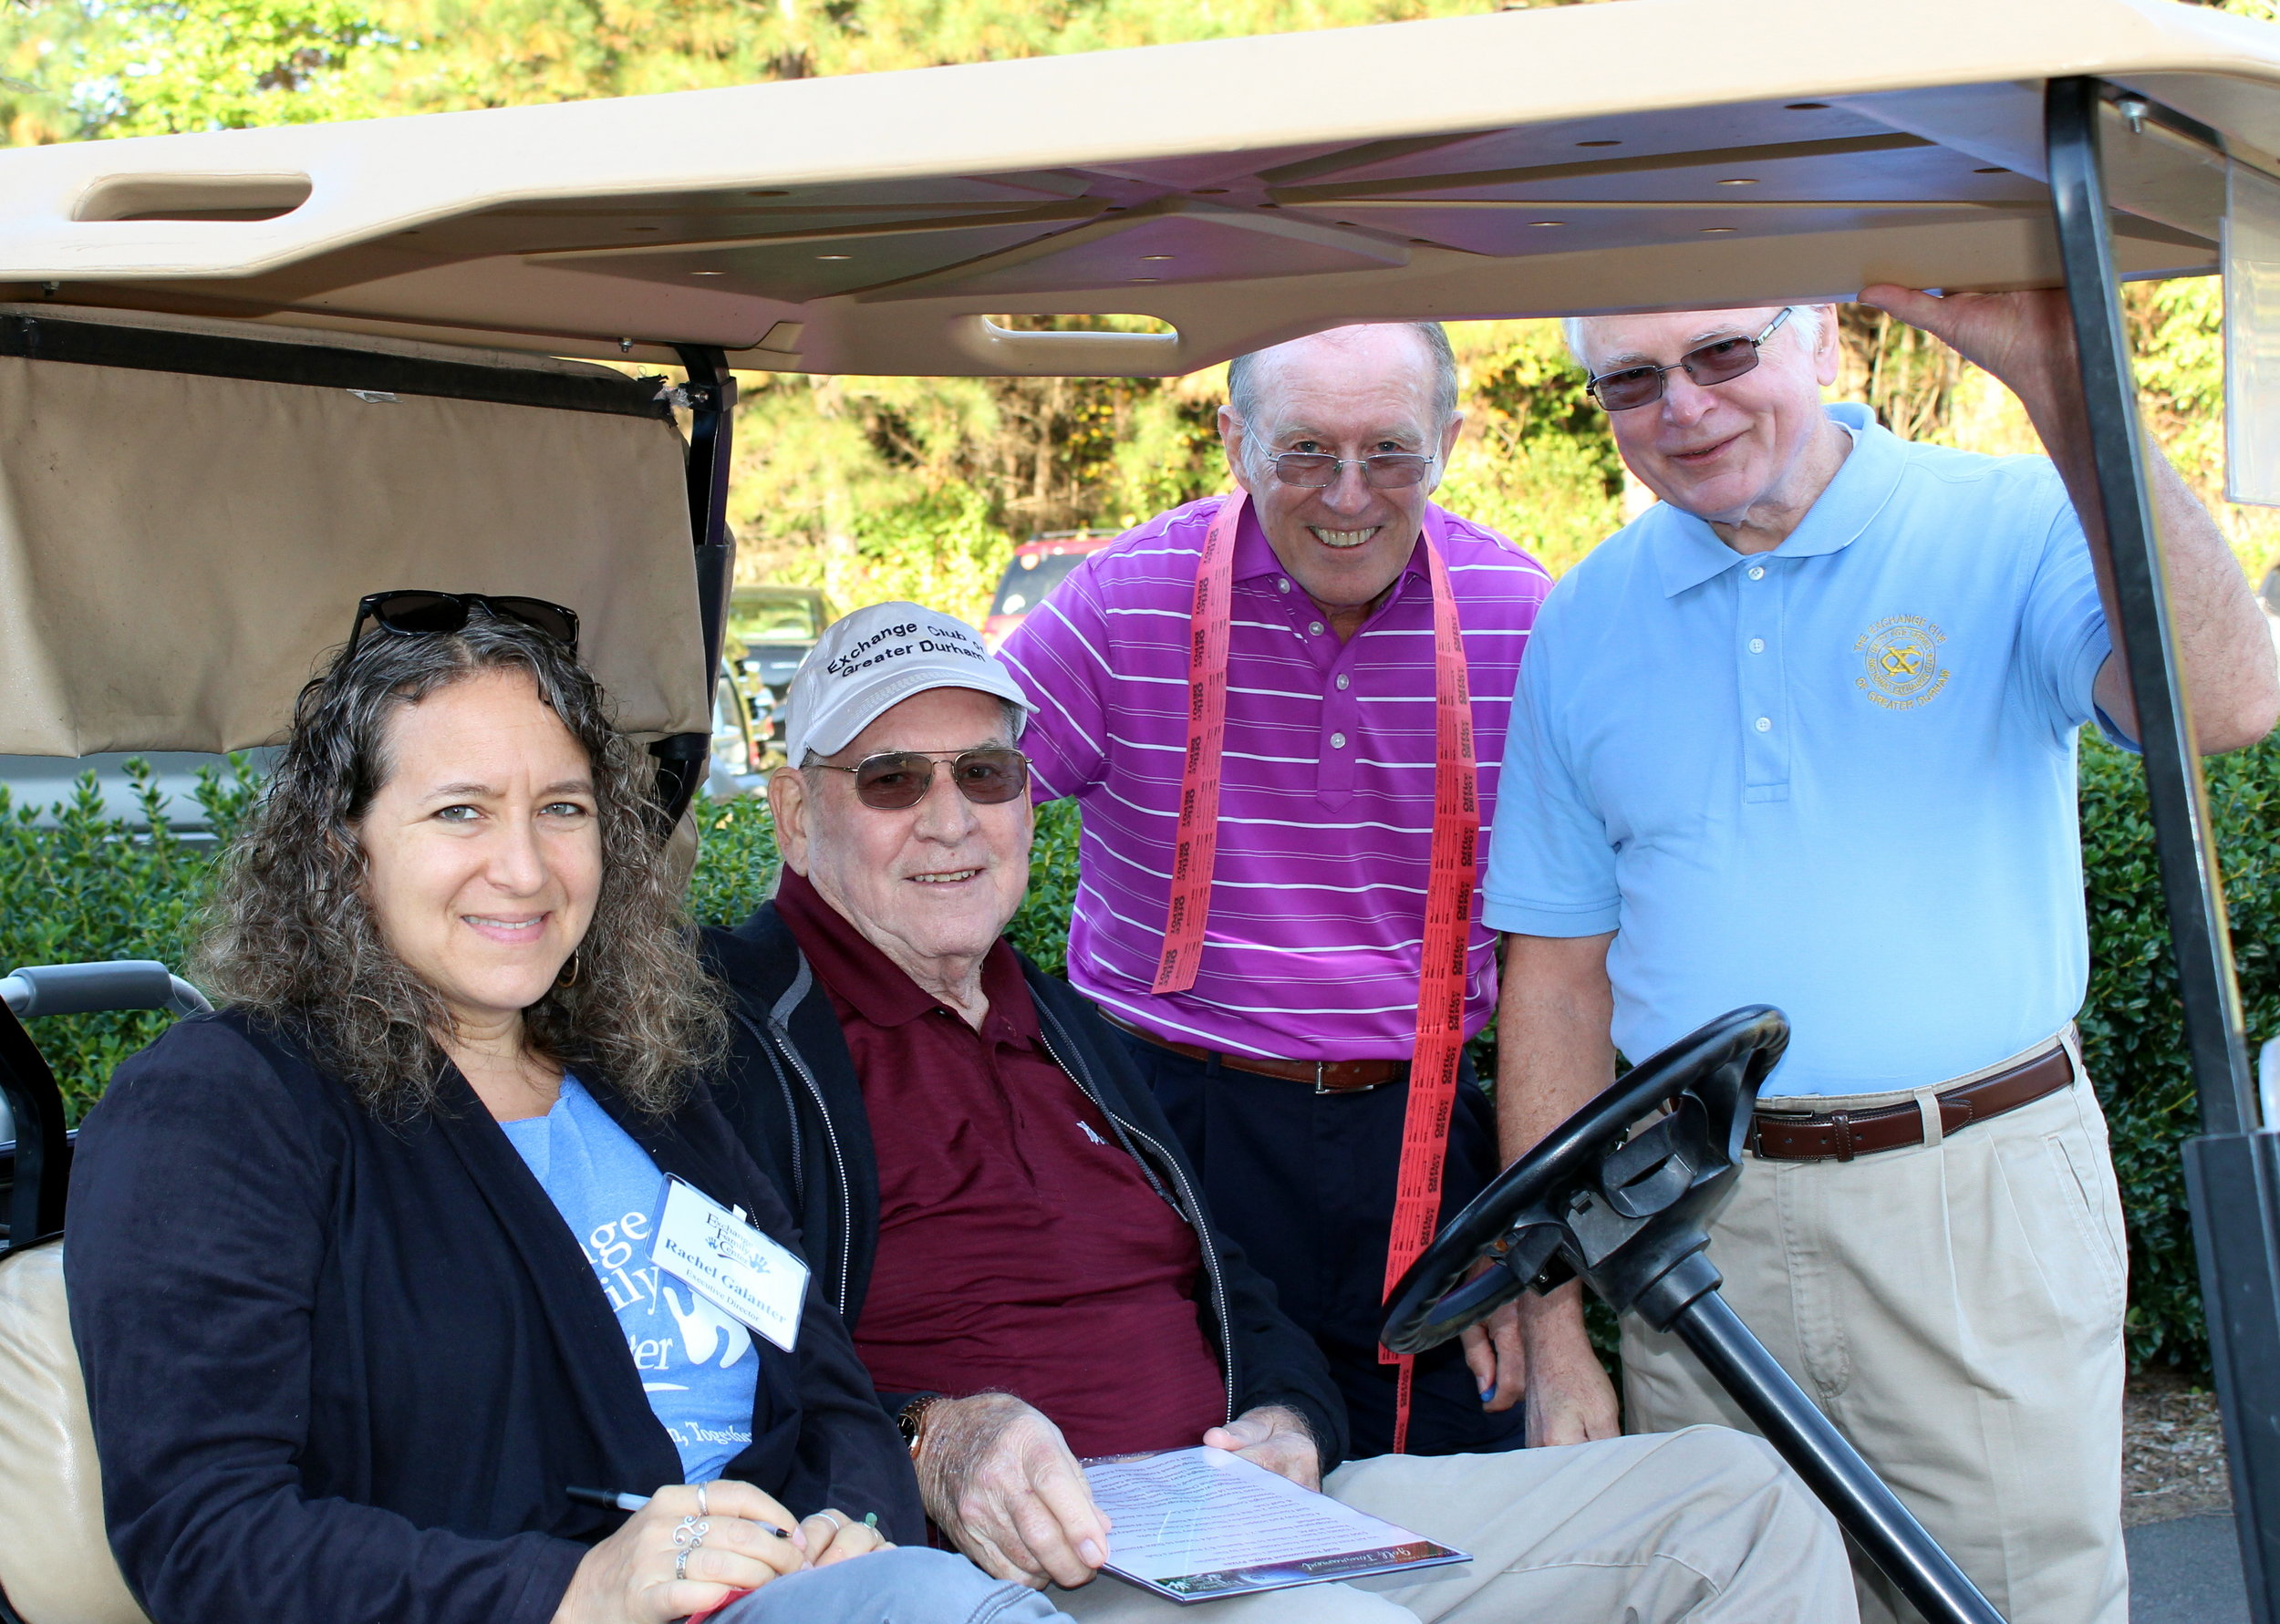 Rachel Galanter (Executive Director), Jim Barringer (Board member, Foundation settlor, and one of EFC's founders), Jerry Dodd (Board member, Foundation settlor, and Golf Committee Chair), and Ken Gregory (Foundation settlor) enjoy each other's company prior to tee off.